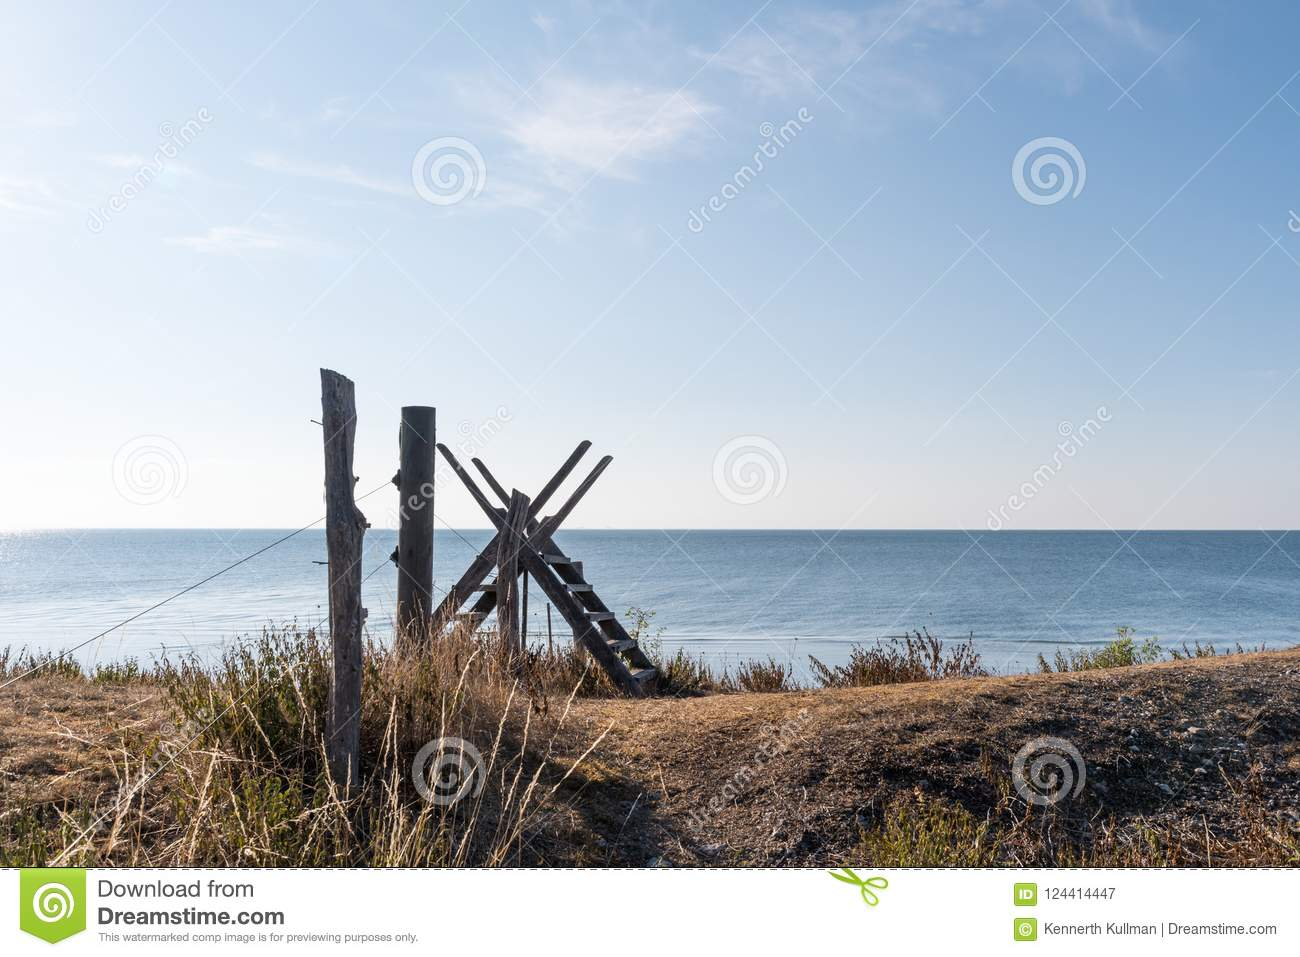 Fence with a wooden stile